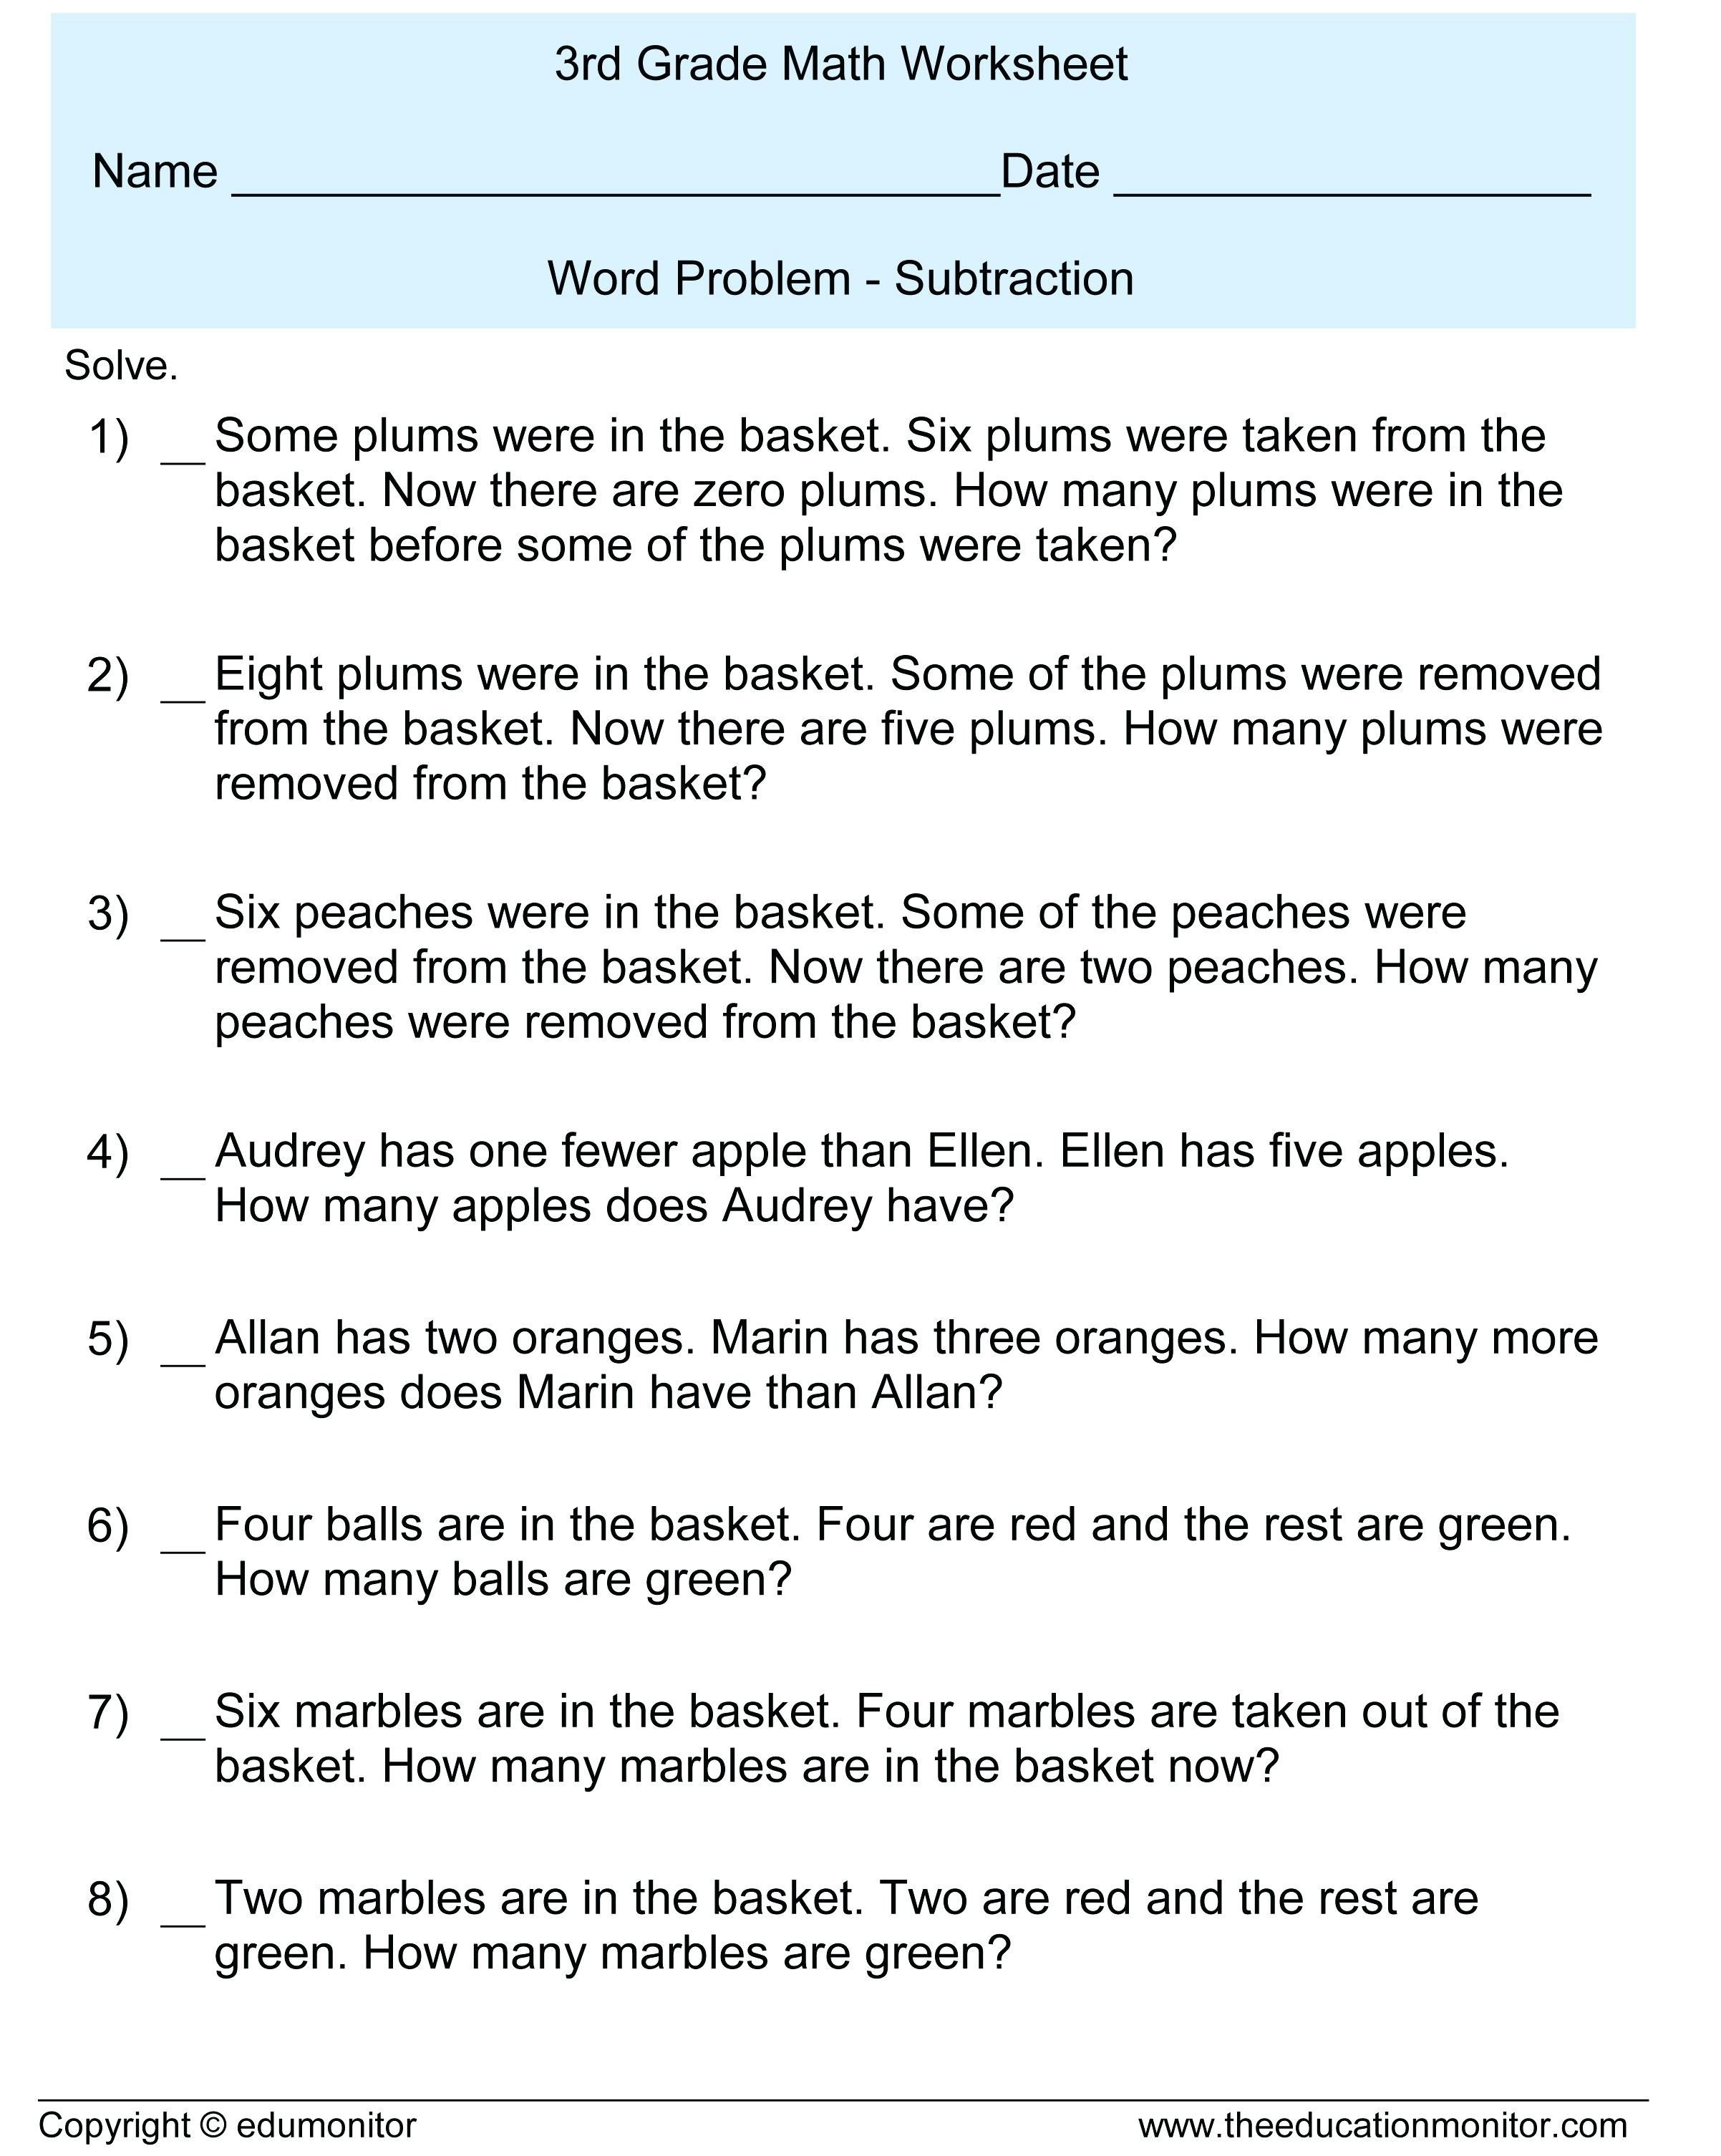 Adding And Subtracting Integers Worksheet All About Worksheet Word Problem Worksheets 3rd Grade Math Worksheets 4th Grade Math Worksheets